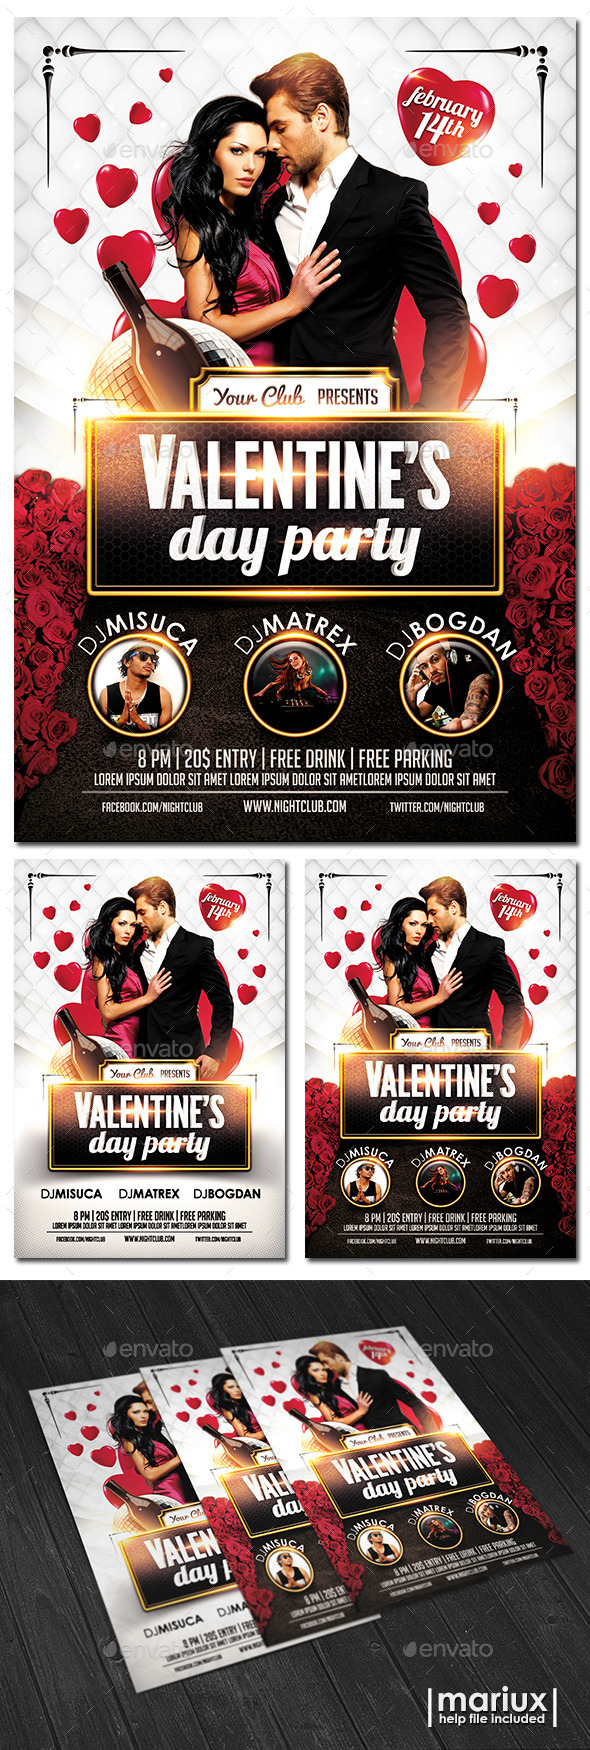 Valentine s Day Party Flyer